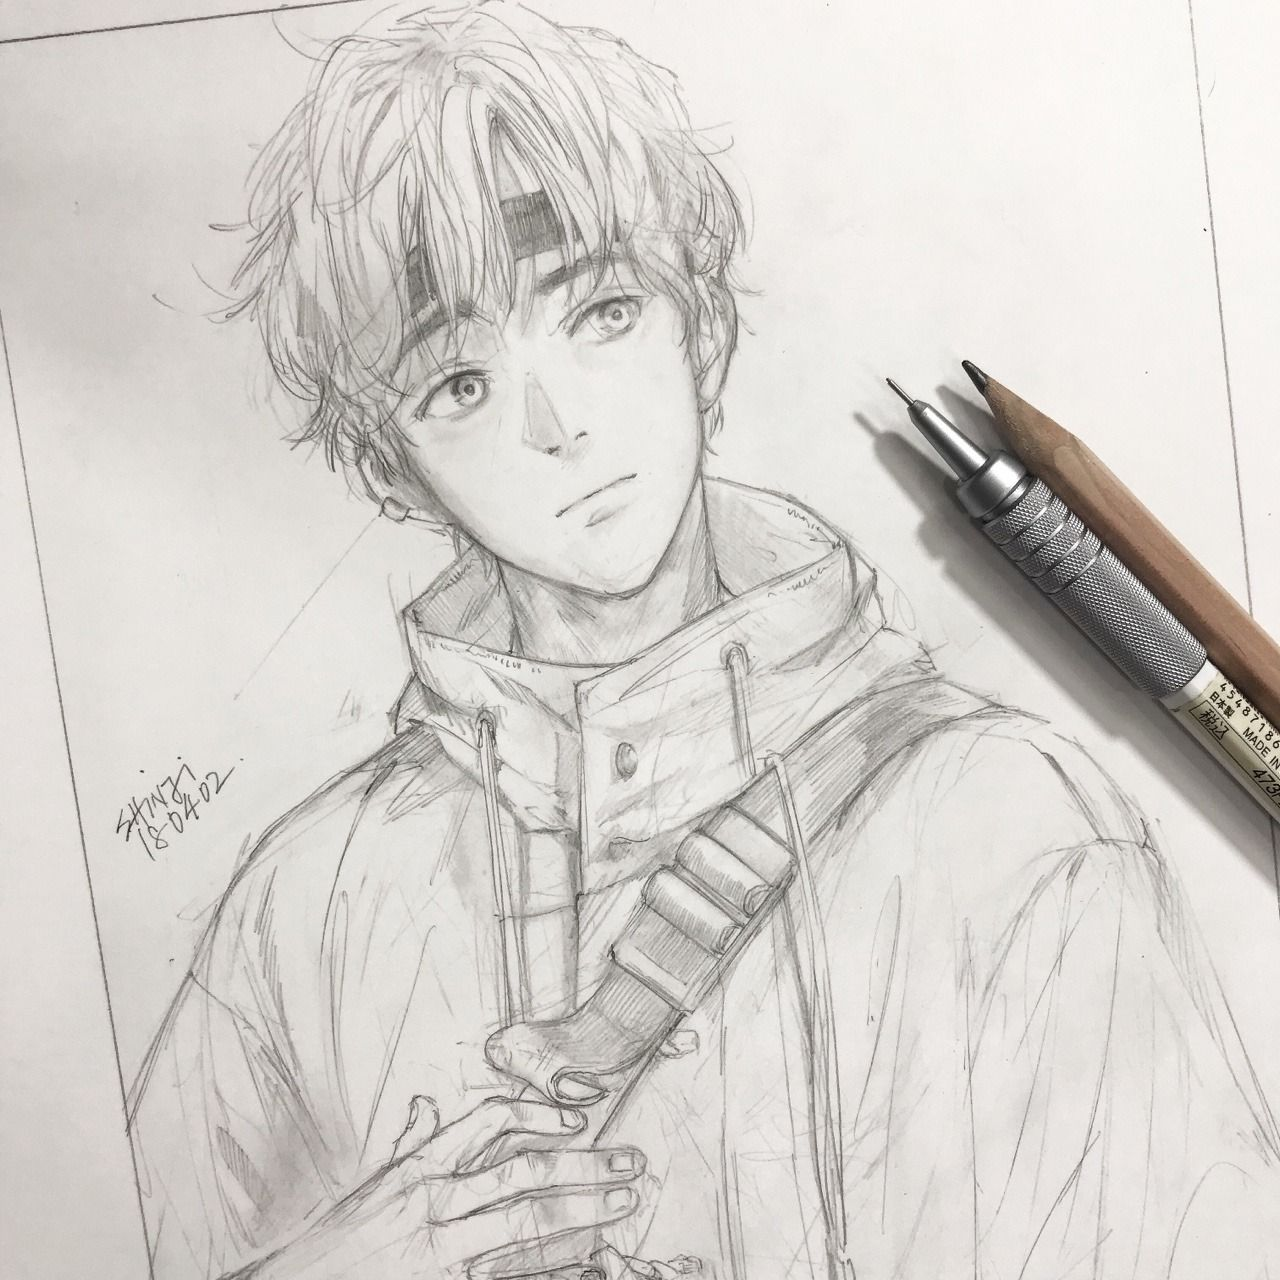 180402 Realistic Drawings Anime Drawings Sketches Anime Drawings